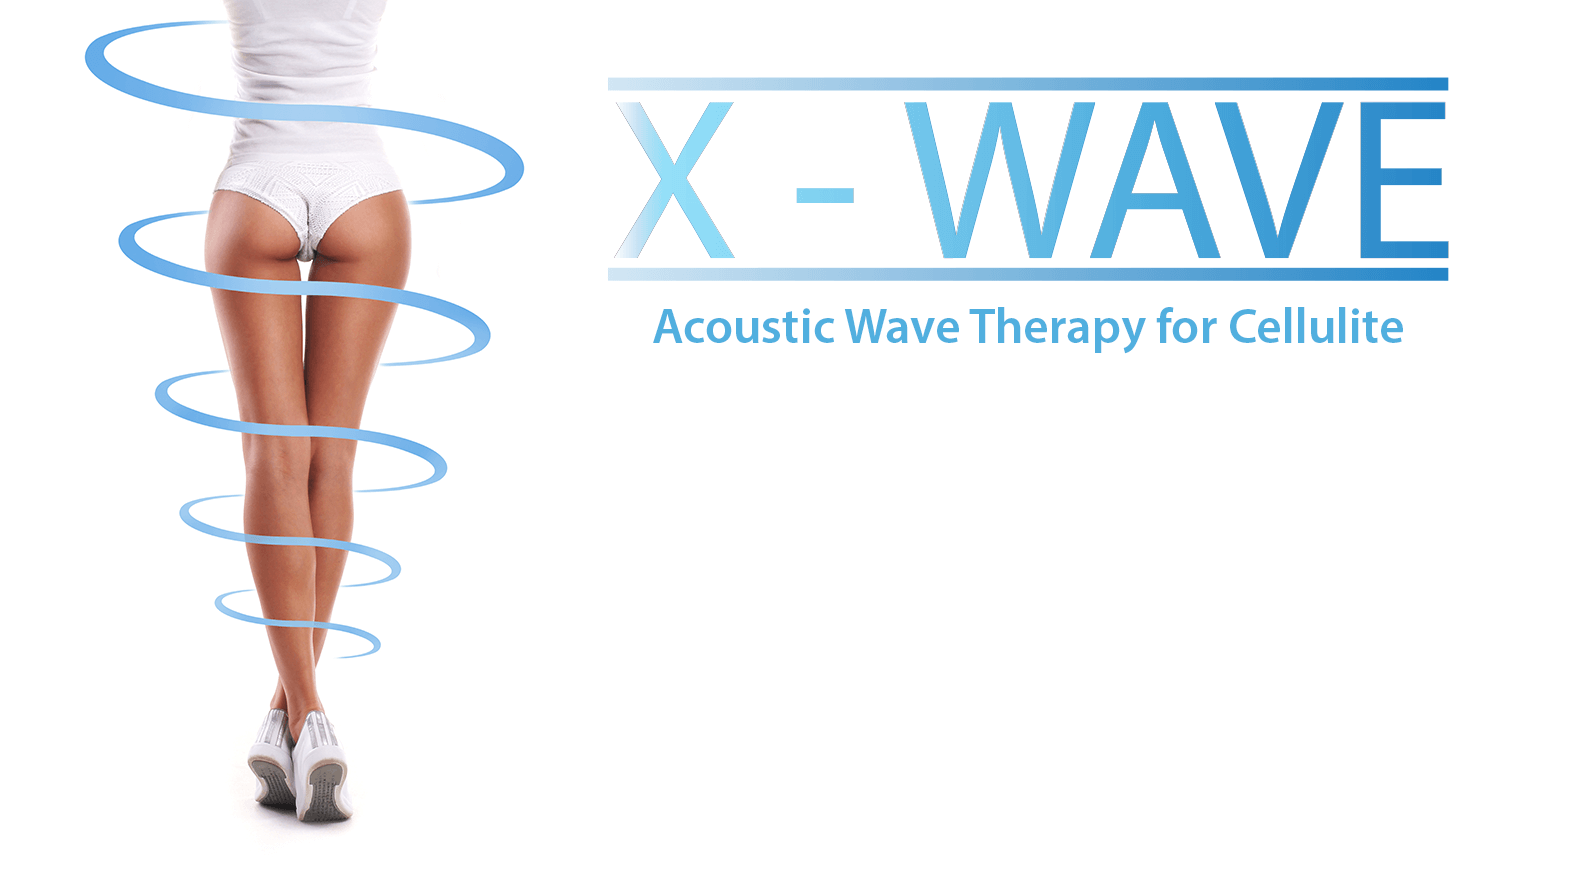 Acoustic Wave Therapy - Cellulite